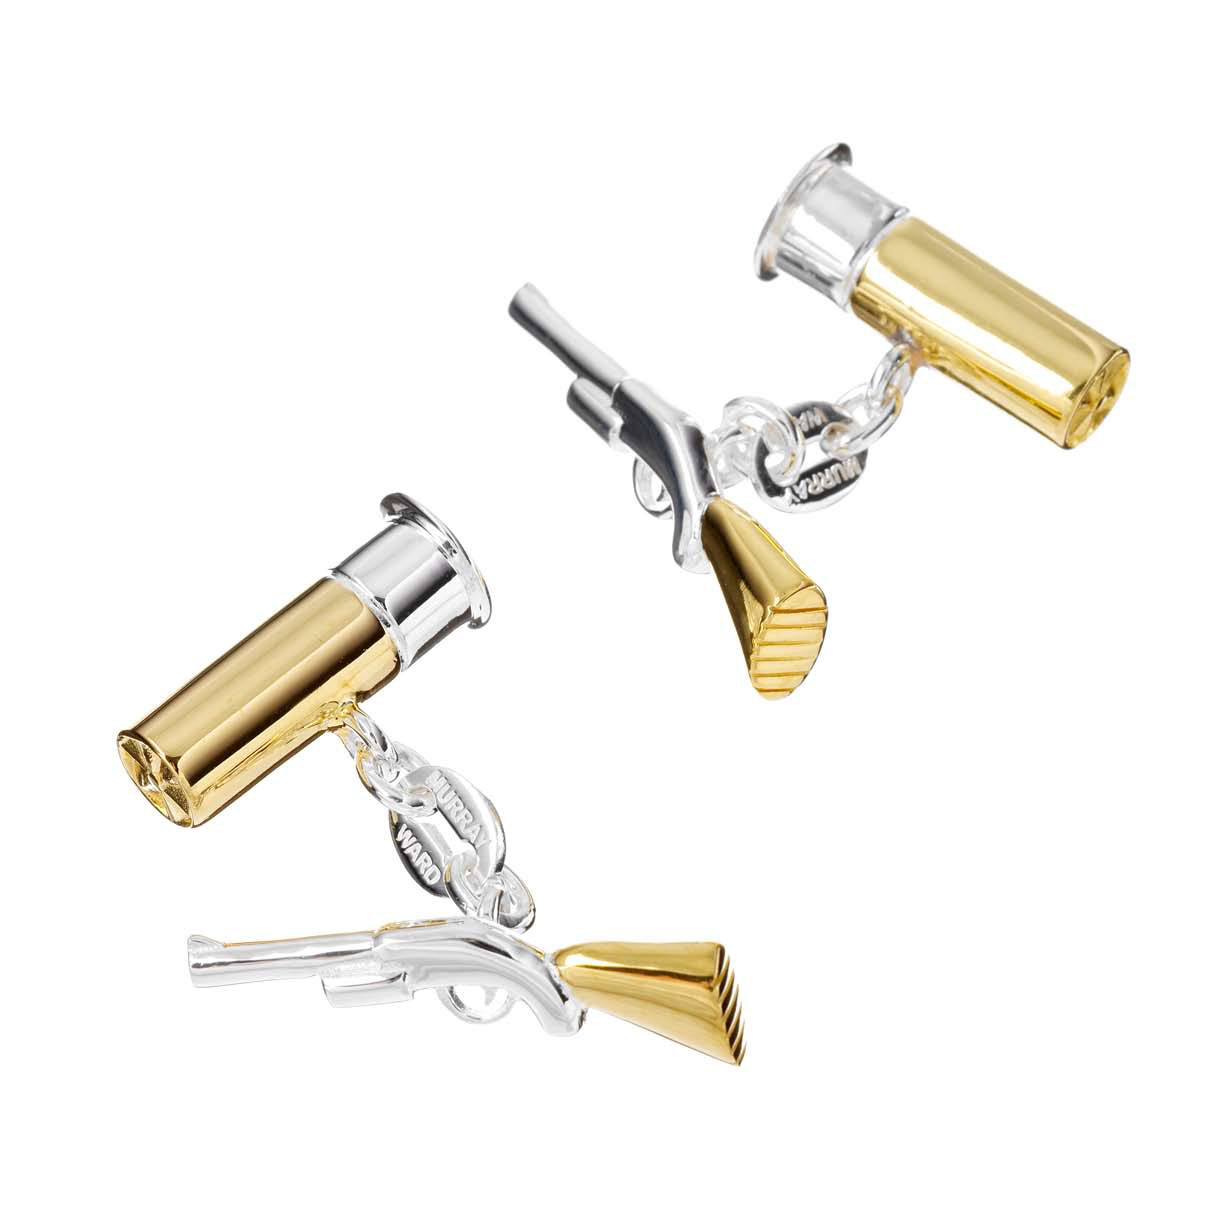 Gold on Sterling Silver Shotgun and Gun Cartridge Cufflinks